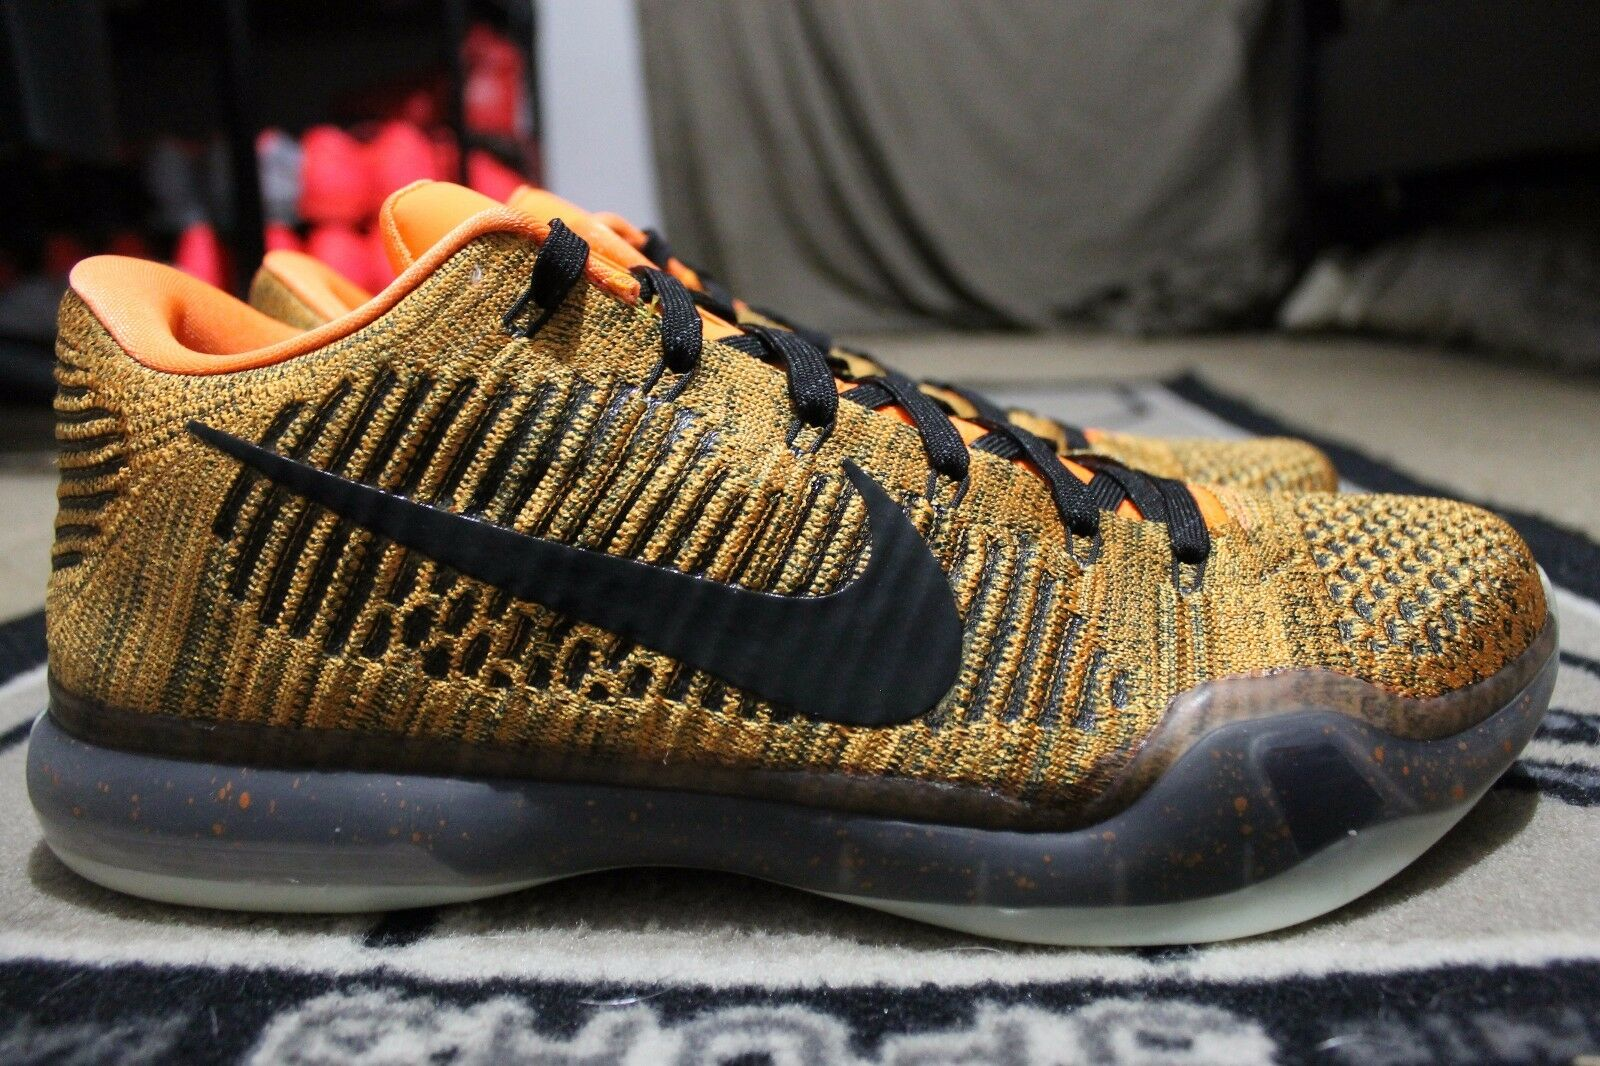 NEW Nike iD Kobe 10 X Elite Flyknit SZ 13 orange Black Glow in The Dark